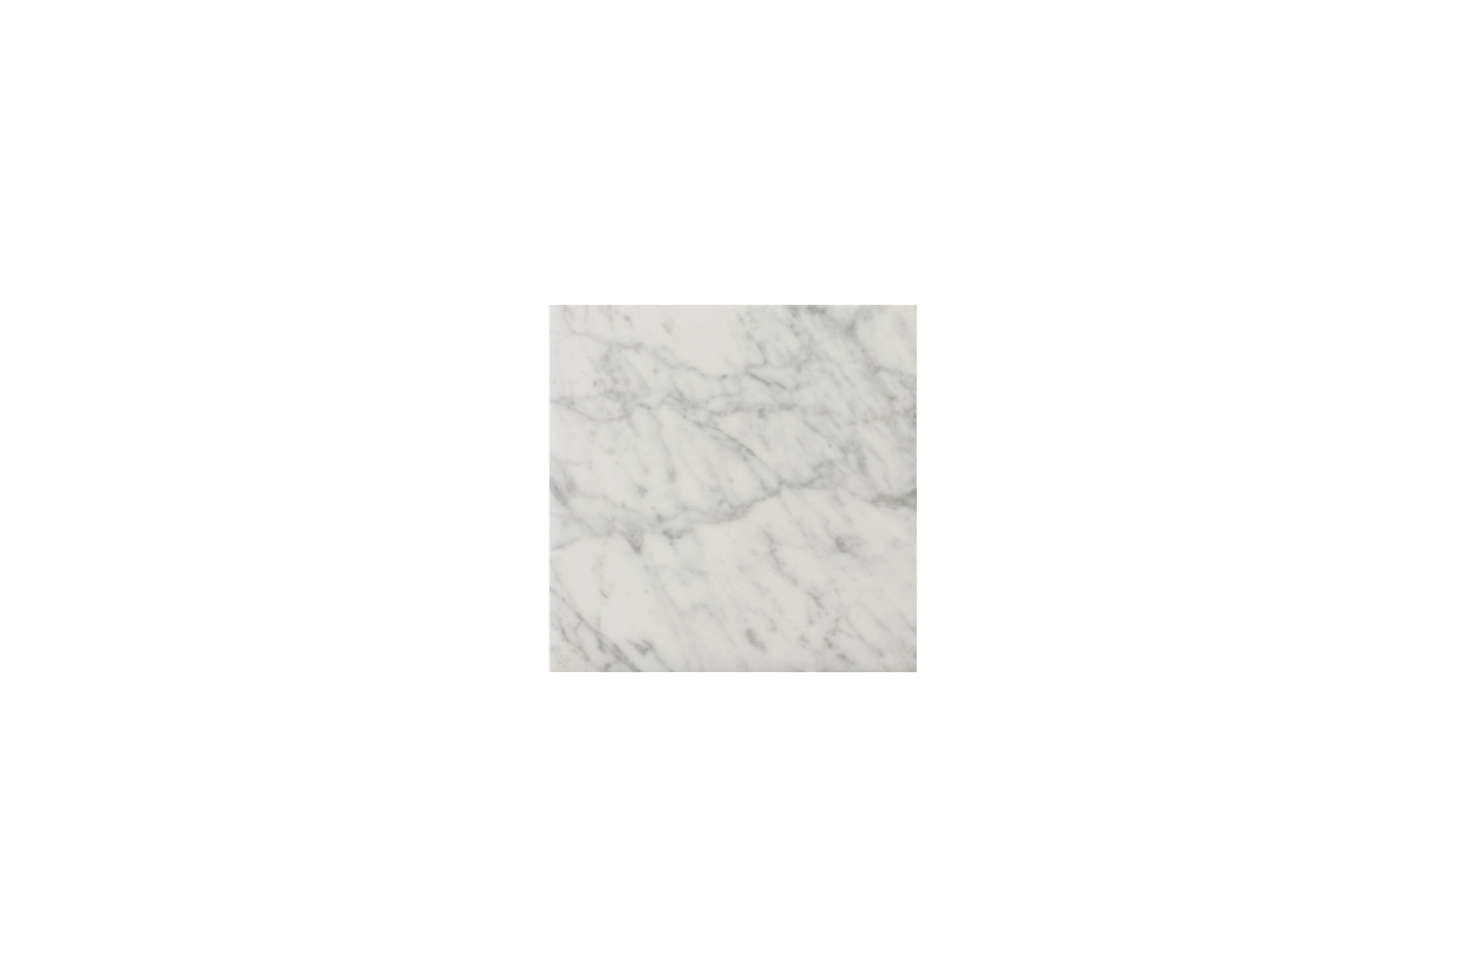 The Emser Bianco Gioia 18×18 Inch Marble Floor and Wall Tile is $26.48 per tile at The Home Depot.